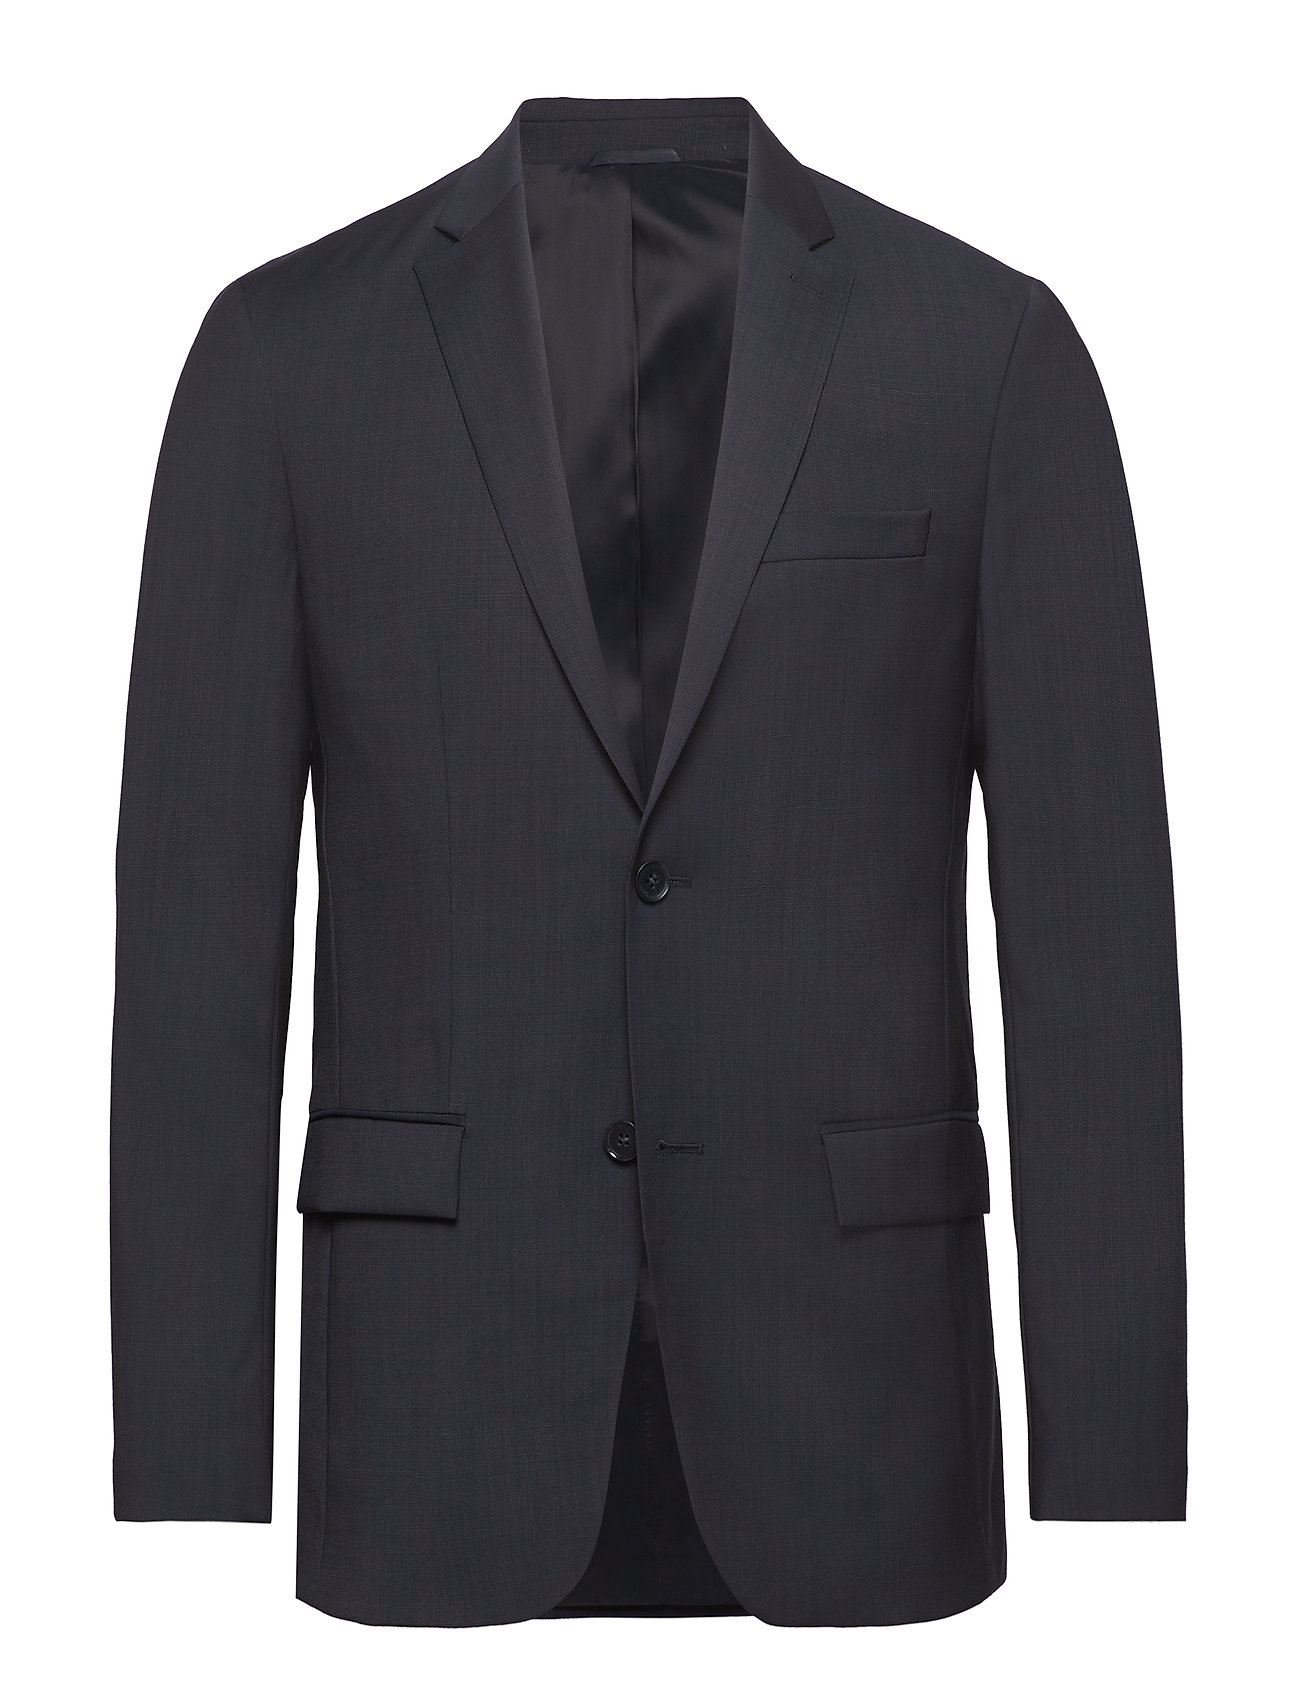 Calvin Klein MODERN TEXTURED SUIT - SKY CAPTAIN